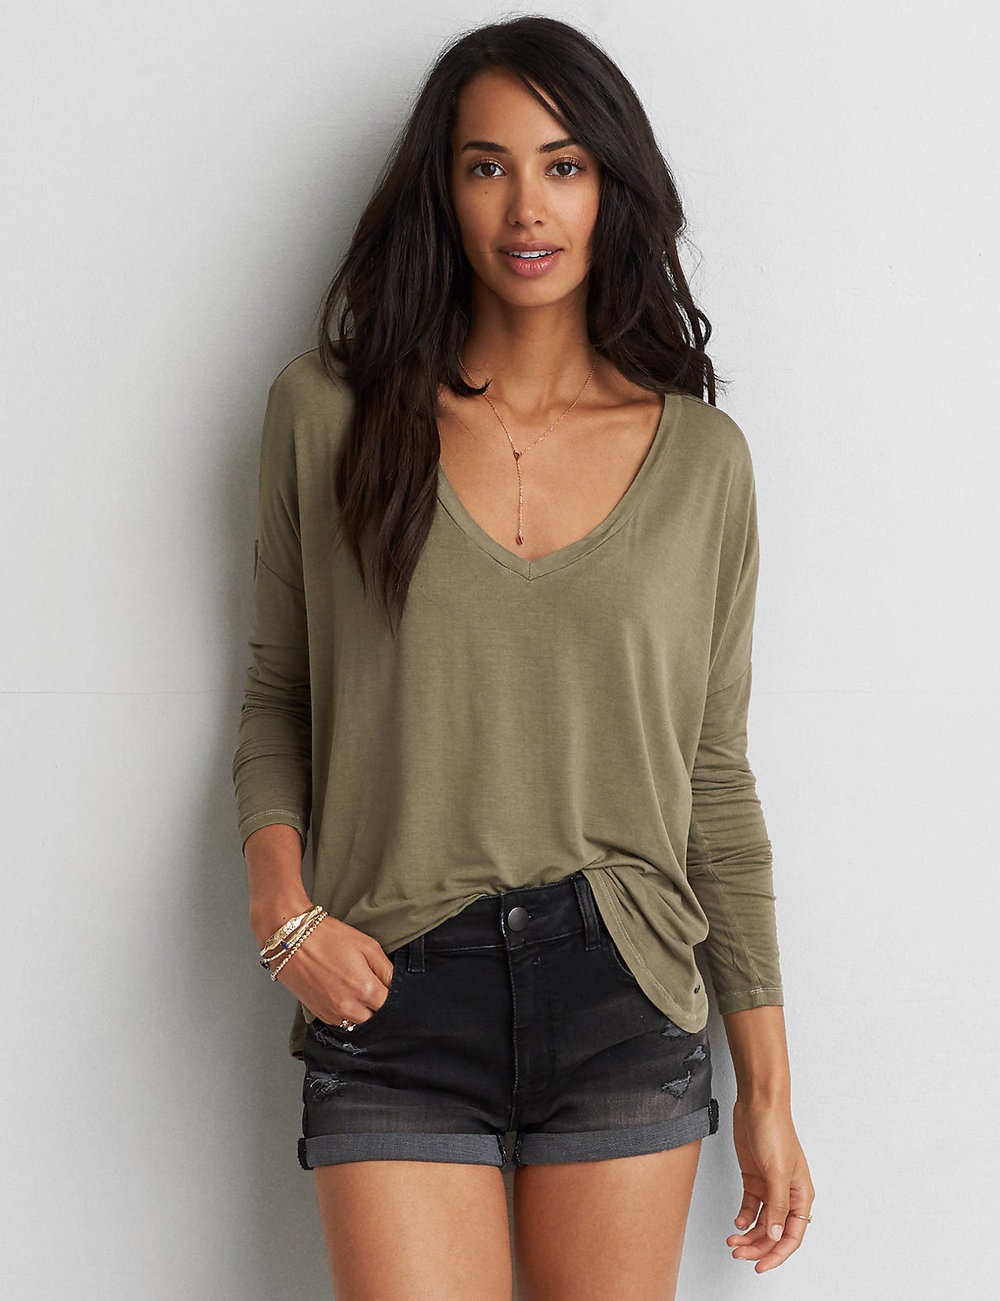 AEO SOFT & SEXY DROP SHOULDER T-SHIRT $24.95